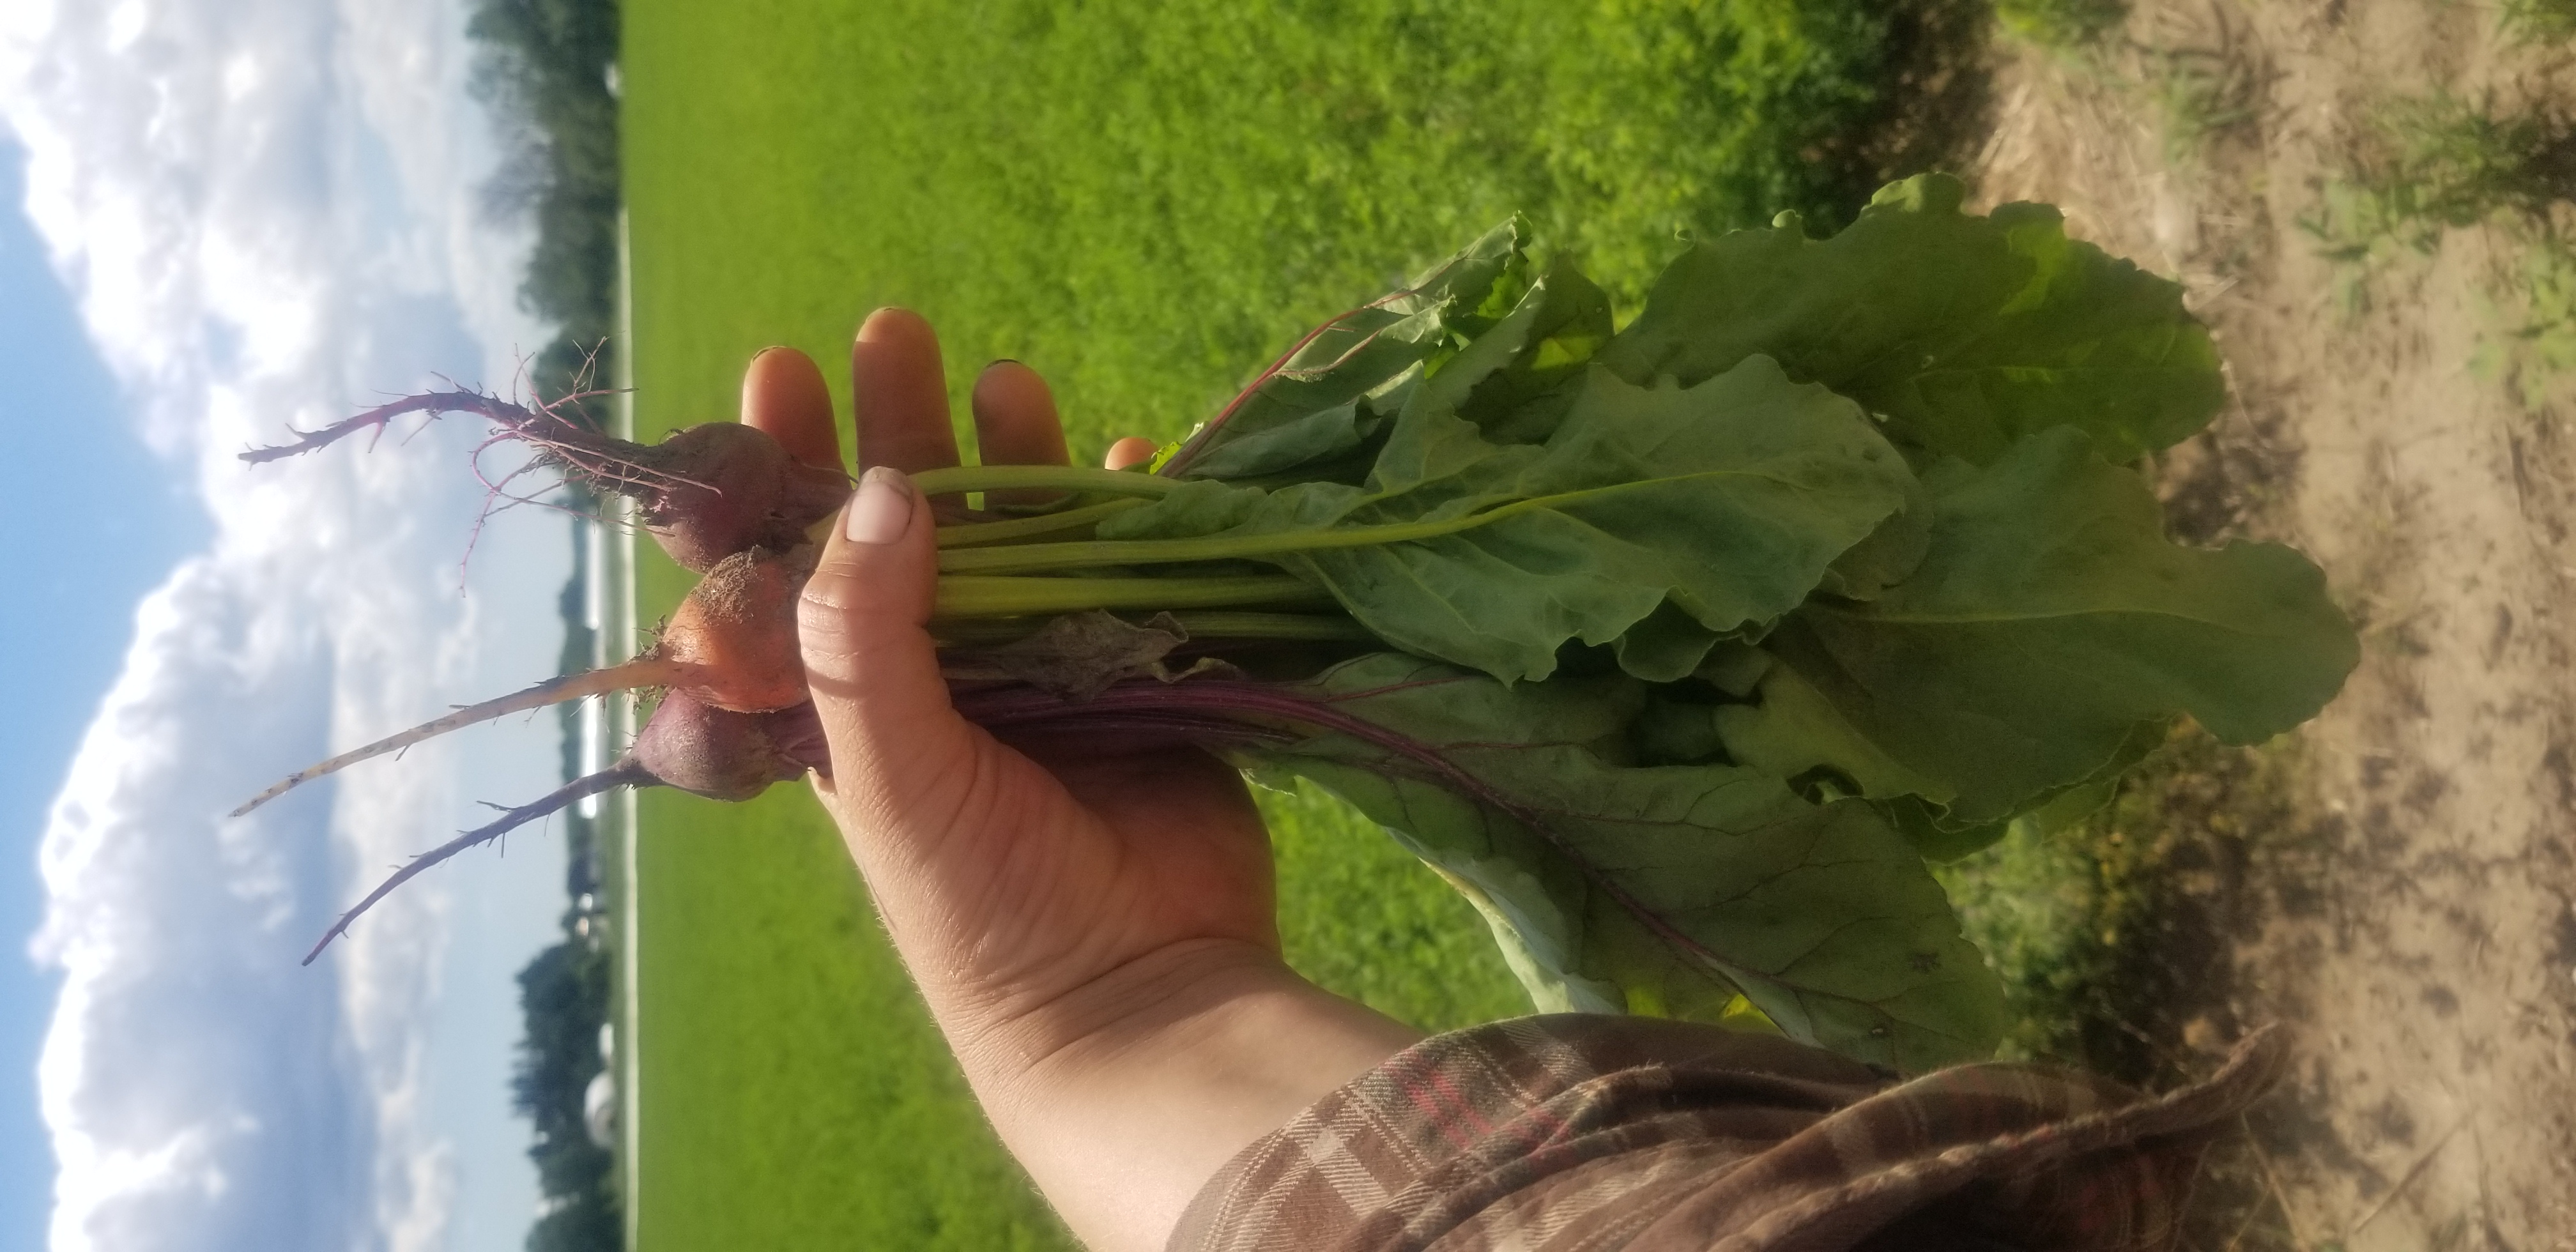 Farm Happenings for July 25, 2020